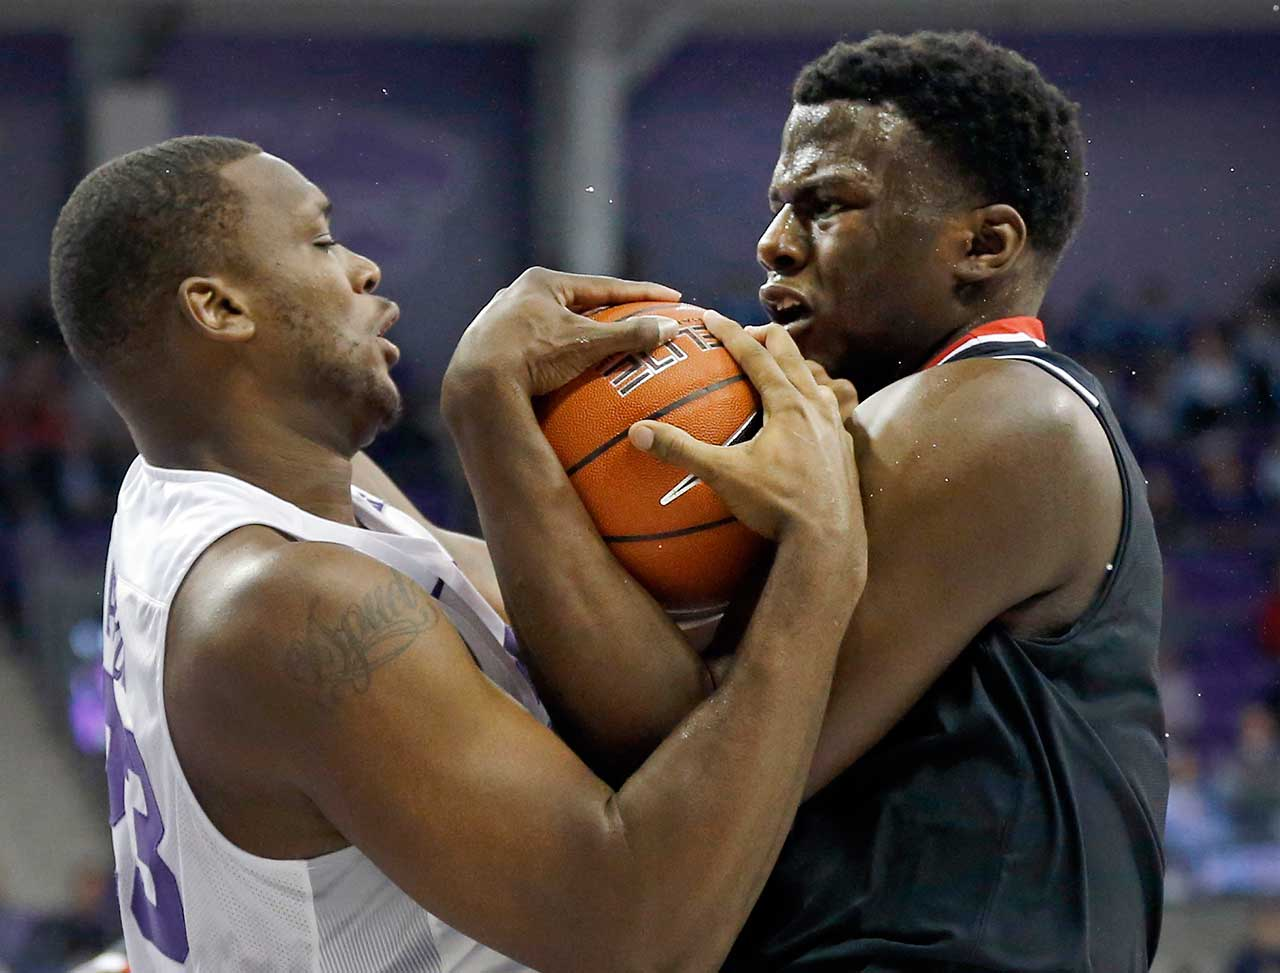 TCU forward Devonta Abron and Texas Tech center Norense Odiase wrestle for a loose ball.